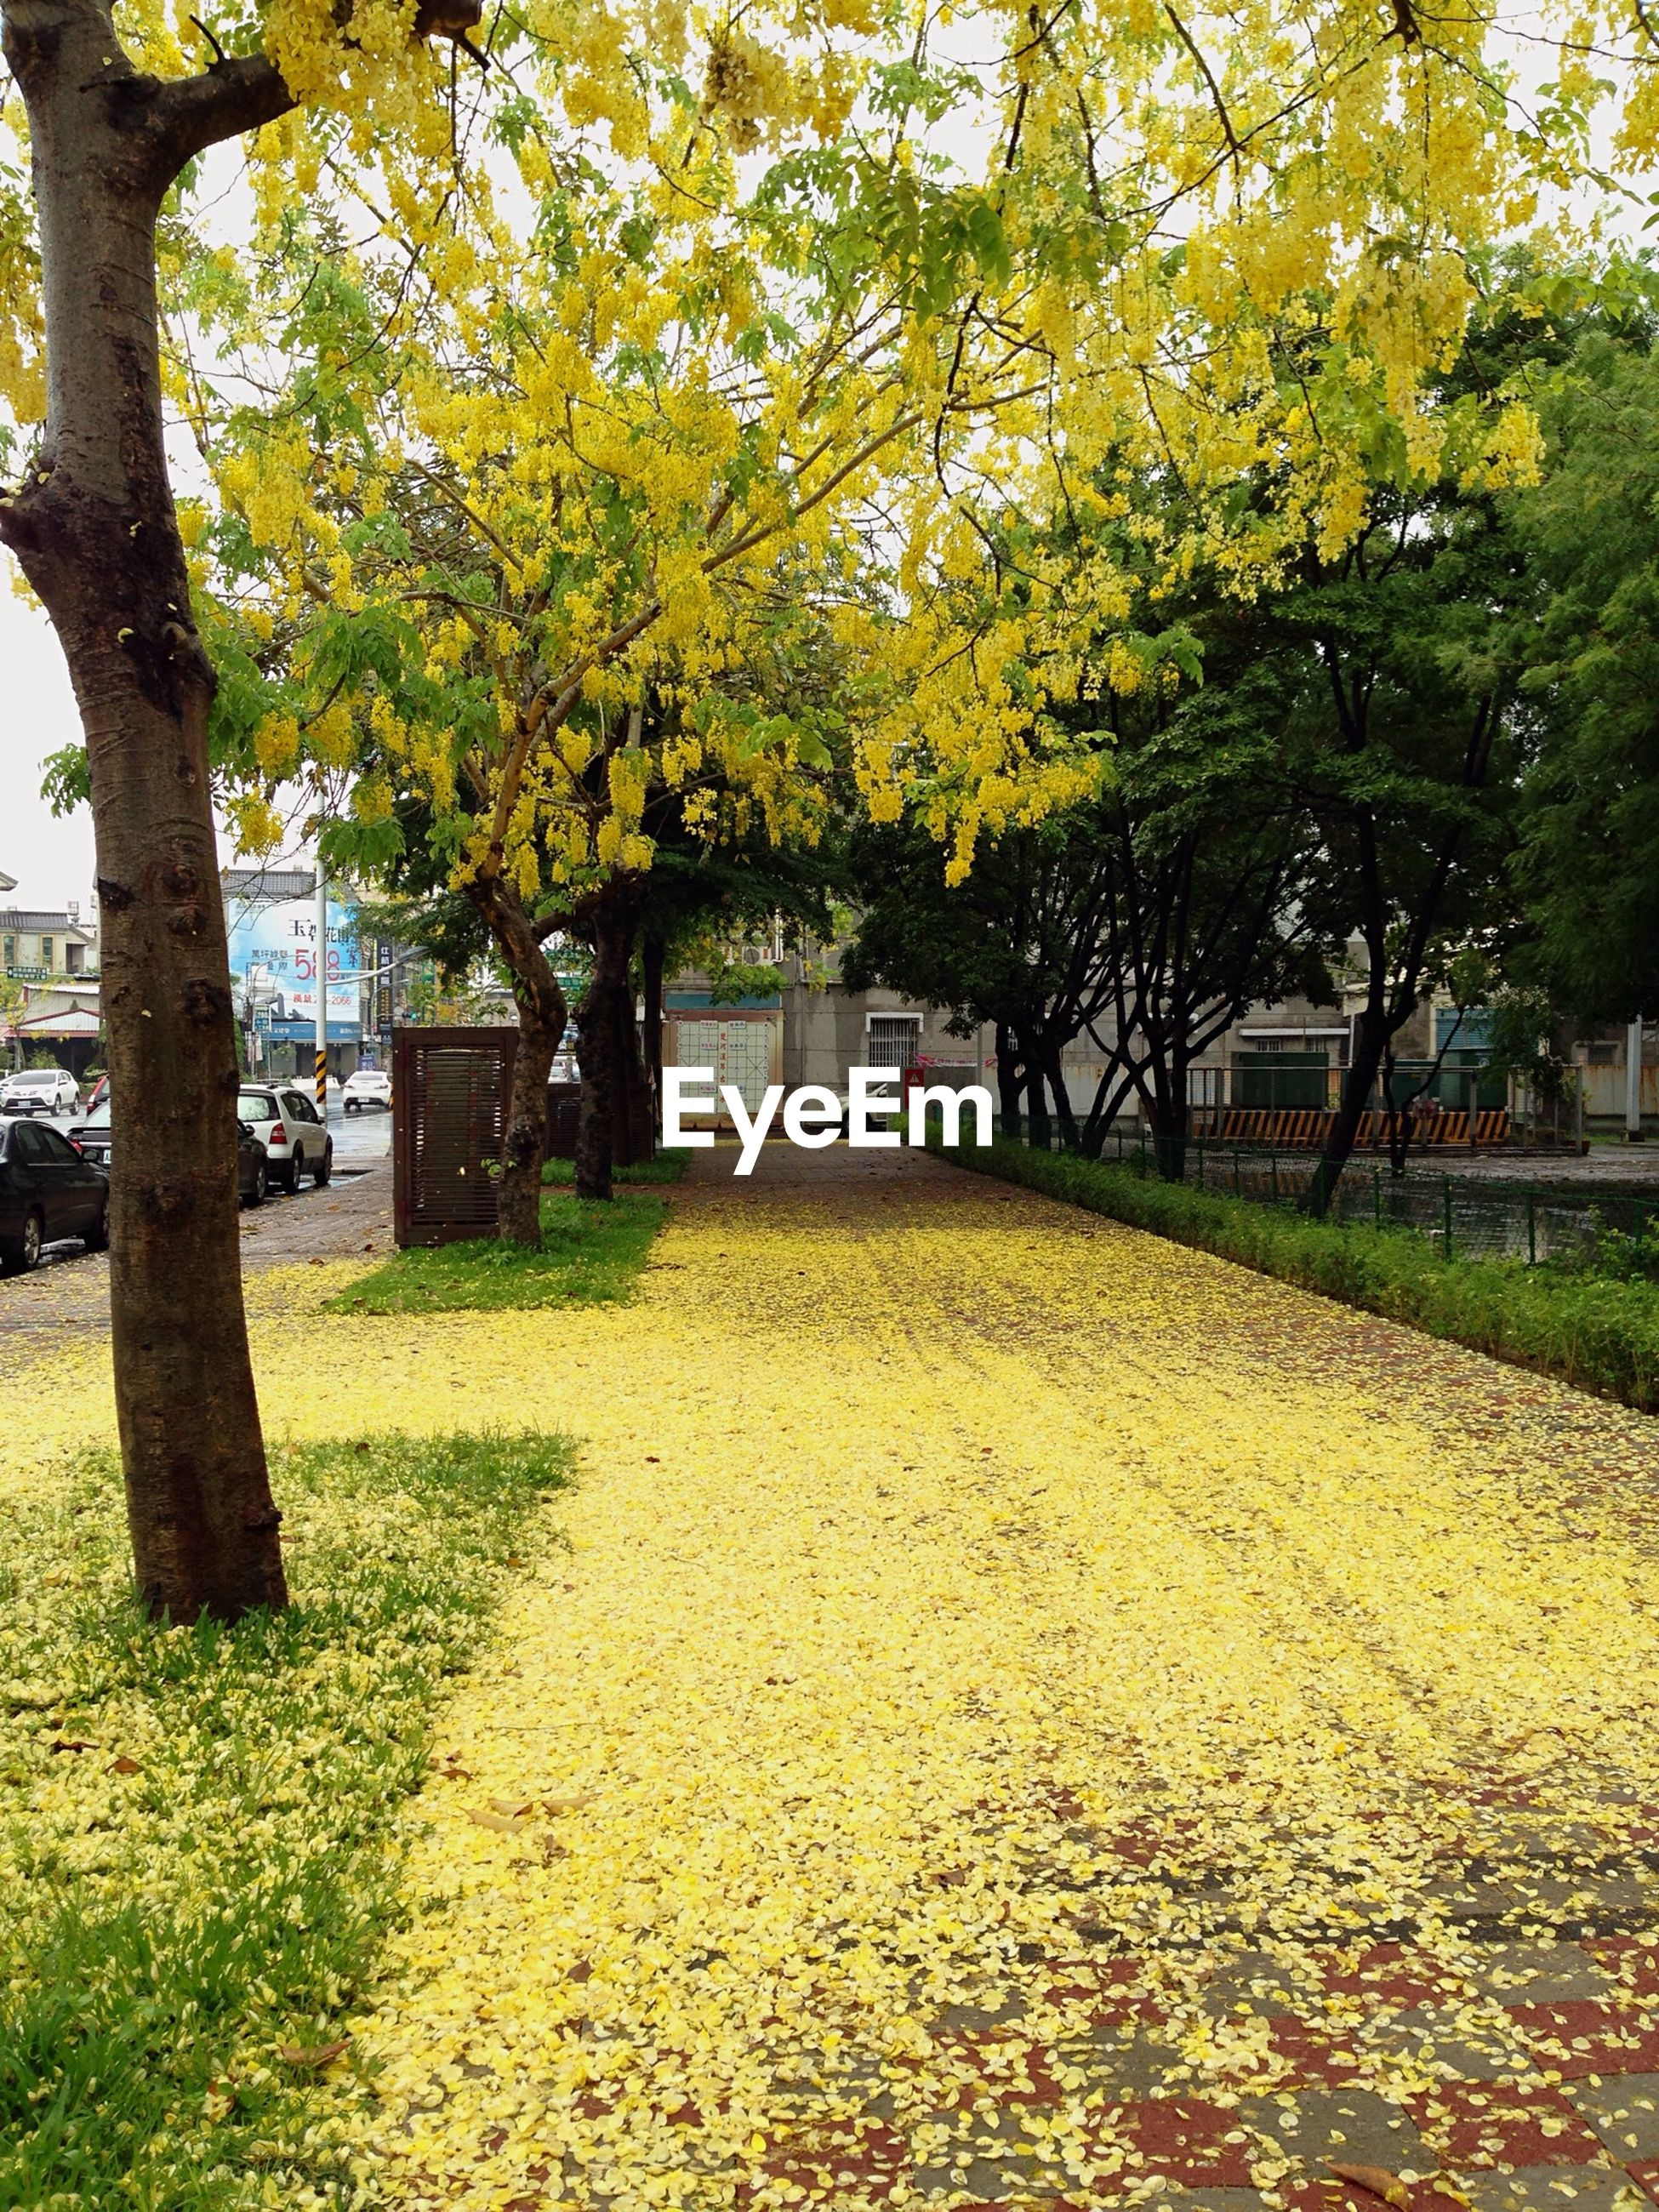 Sidewalk covered with fallen yellow flowers